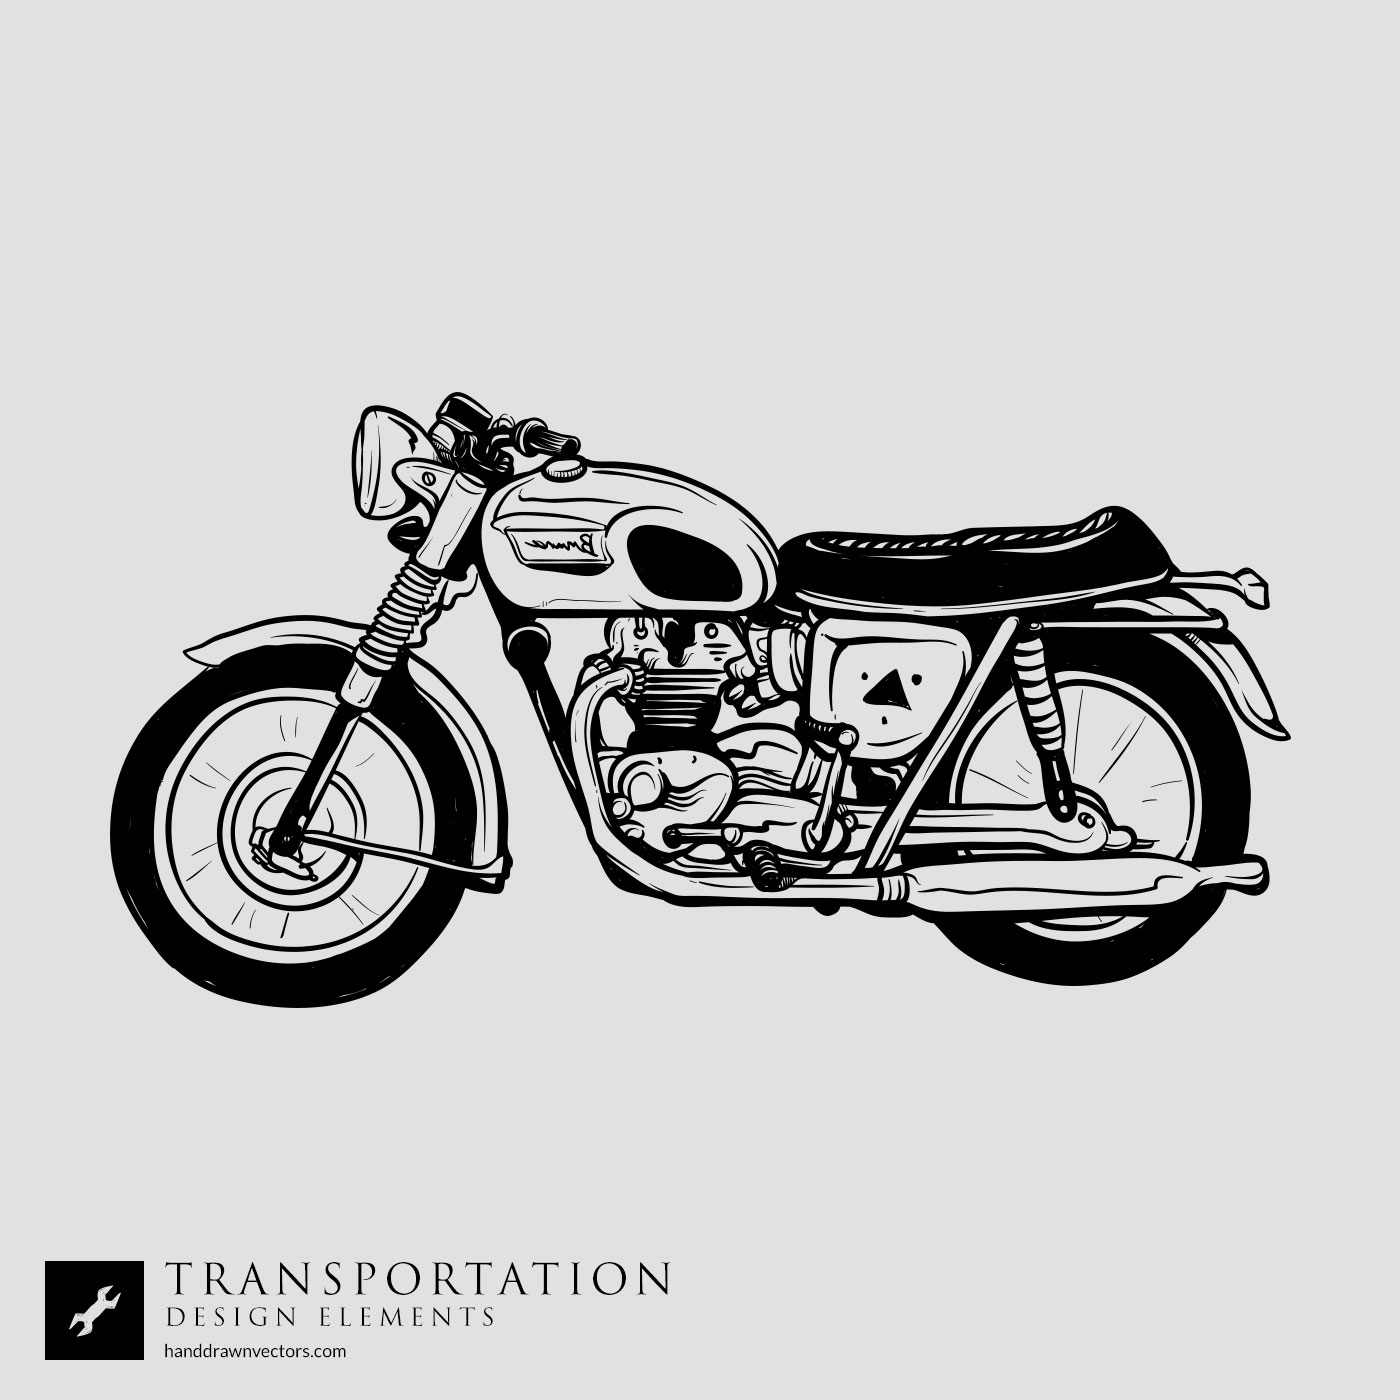 Motorcycle Transportation Vector